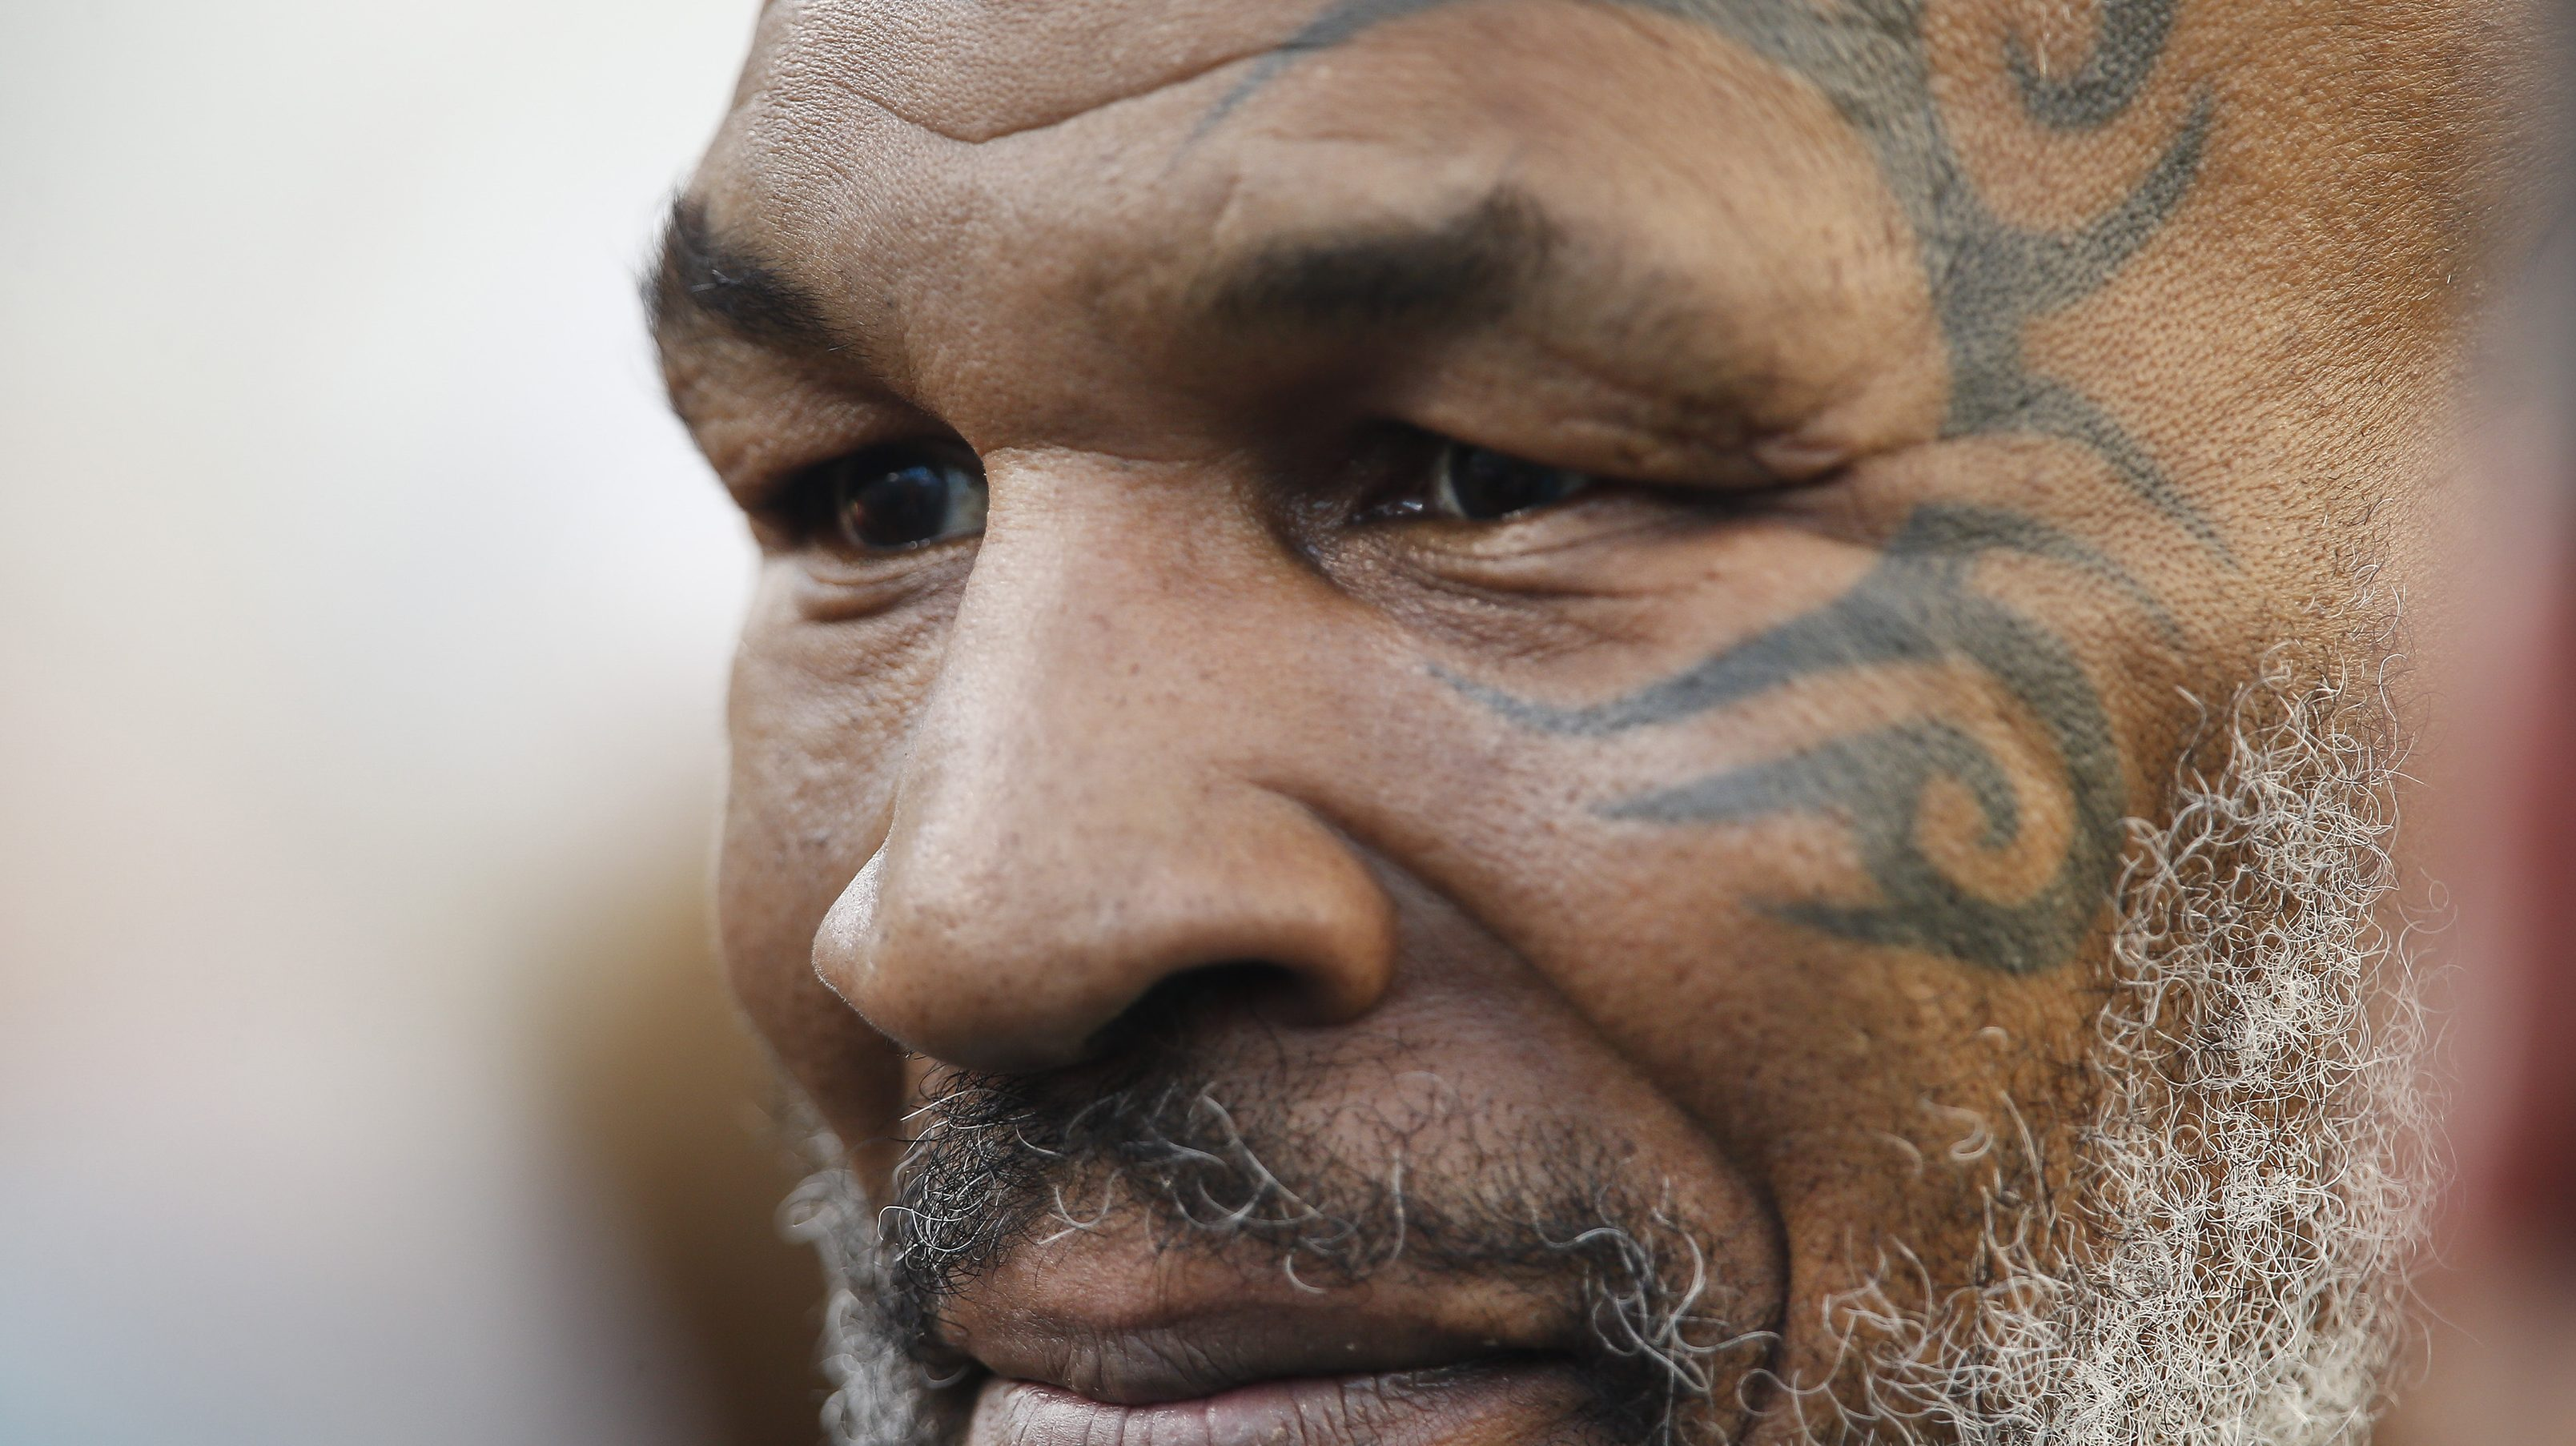 Mike Tyson's comeback is a counterpunch to age discrimination thumbnail